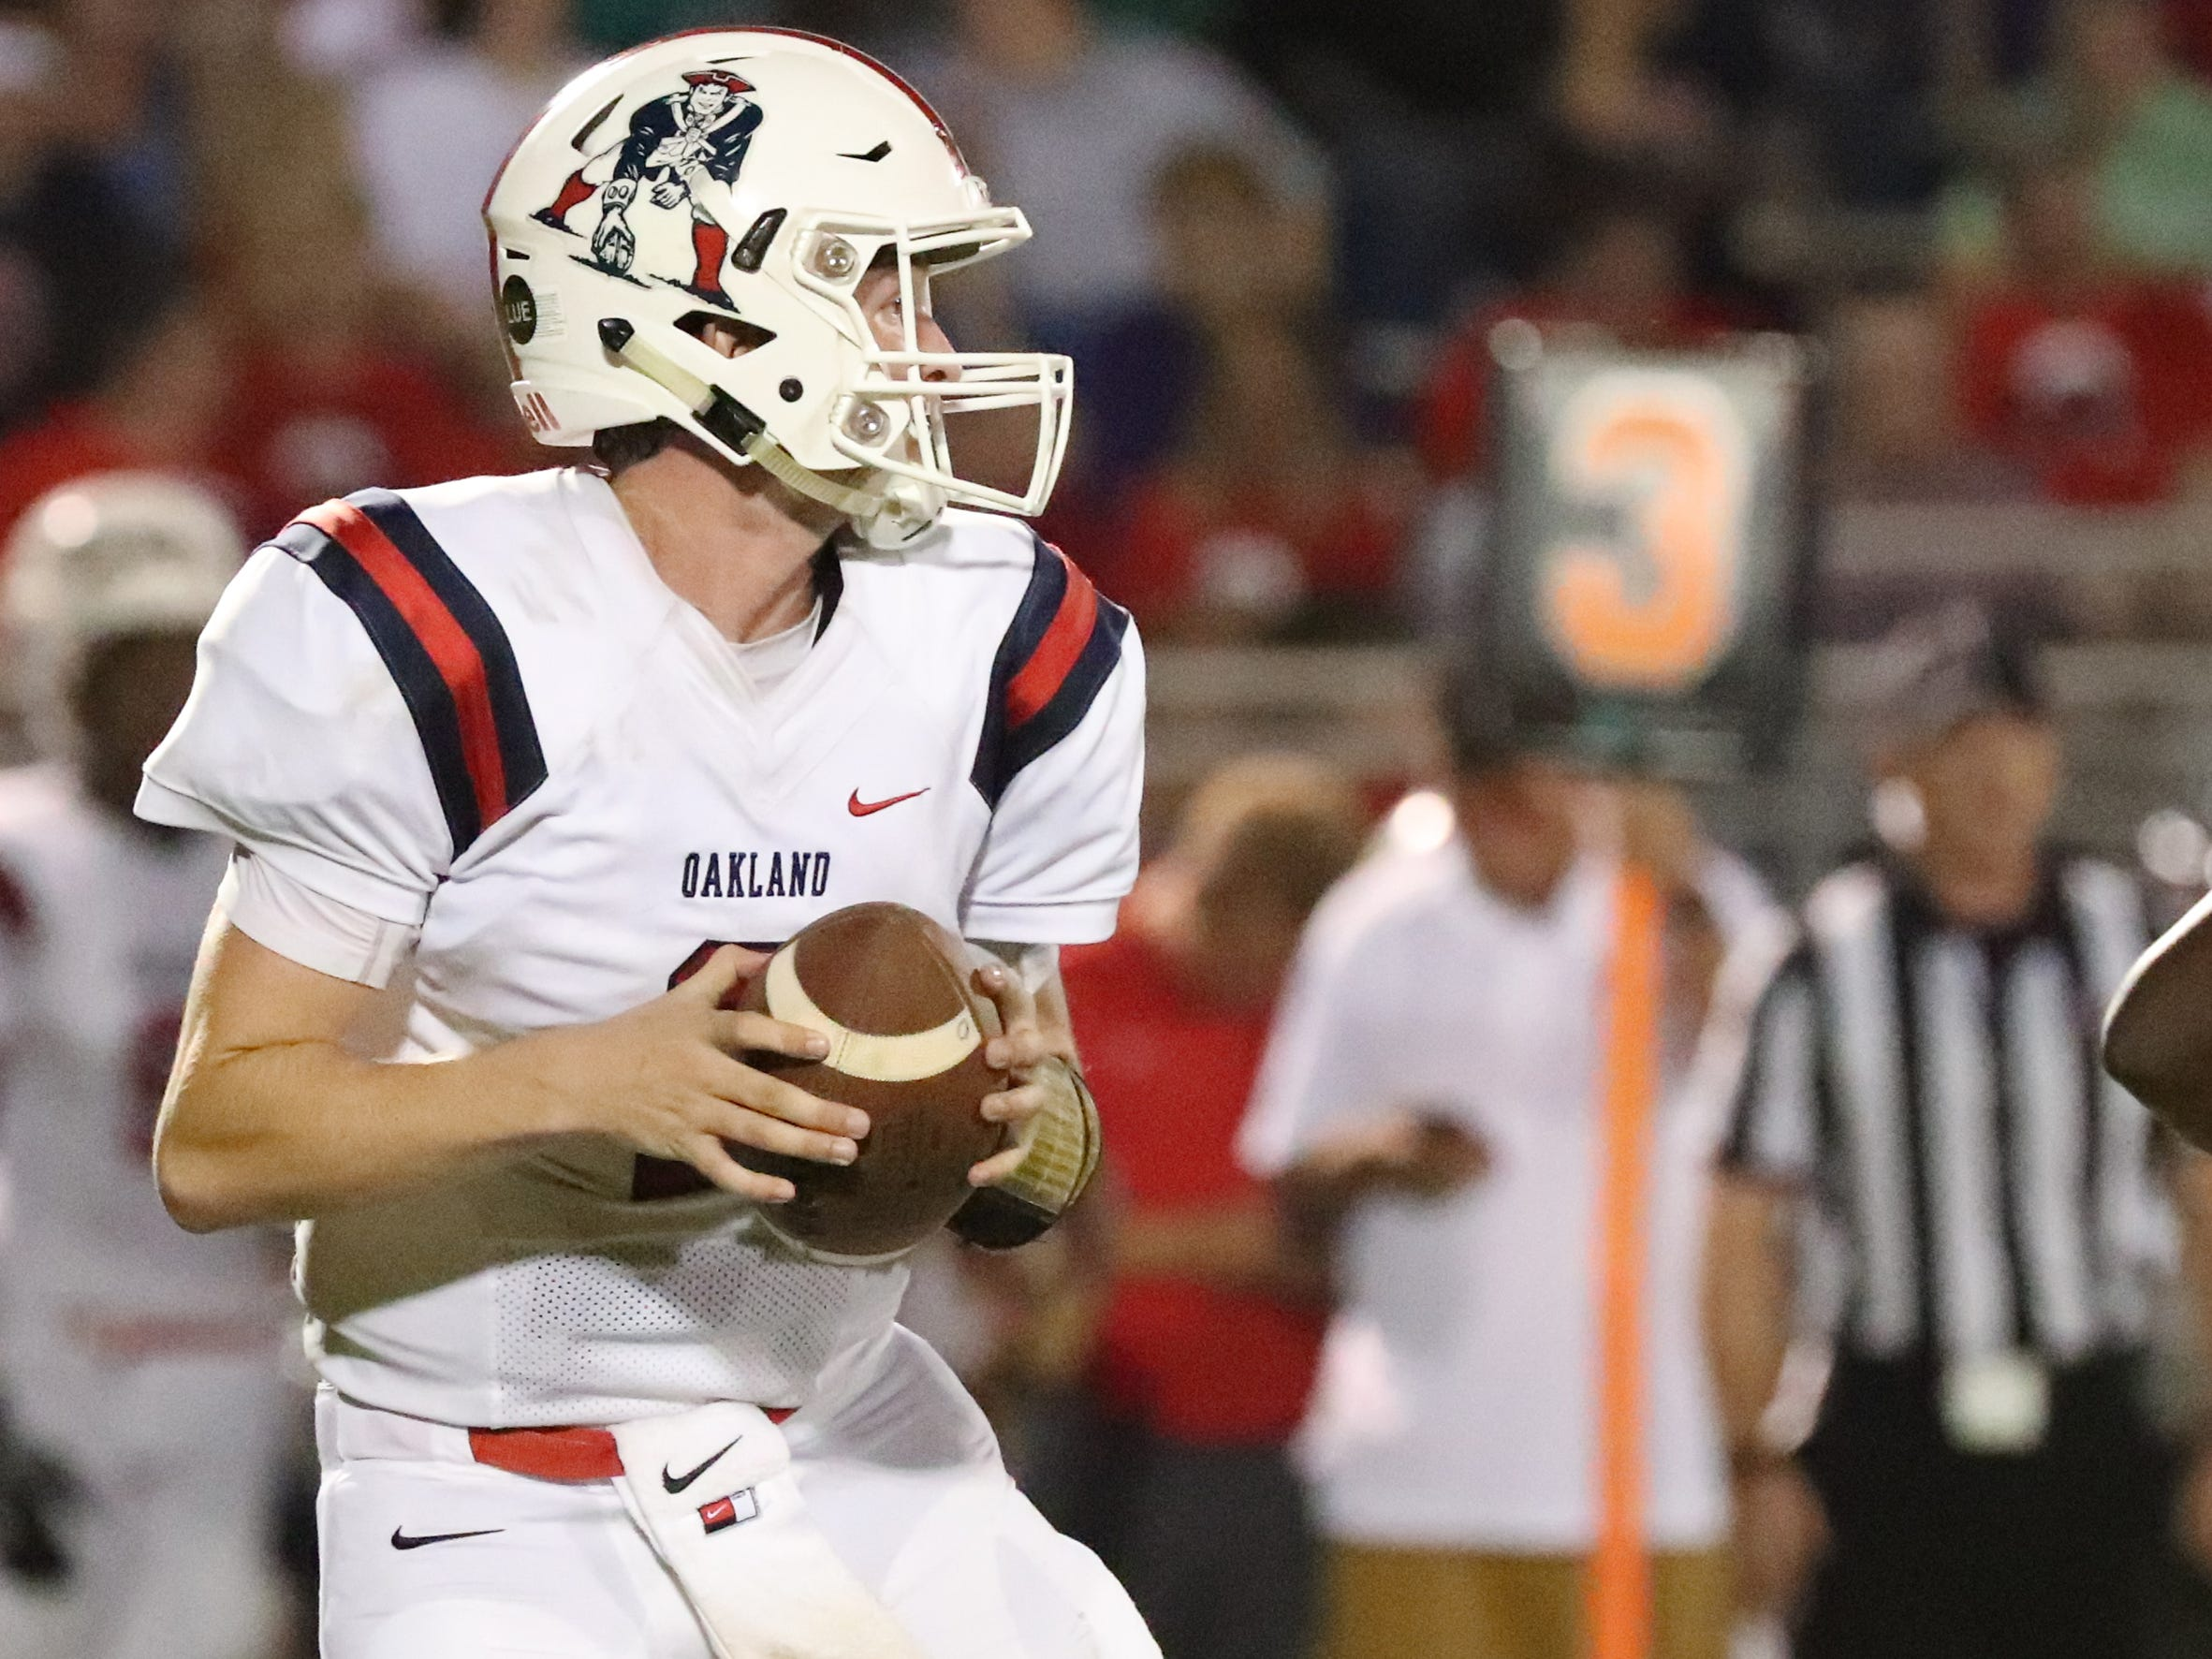 Oakland's quarterback Brevin Linnell (2) drops back to pass the ball against Riverdale during the Battle of the Boro on Friday, Sept. 14, 2018.